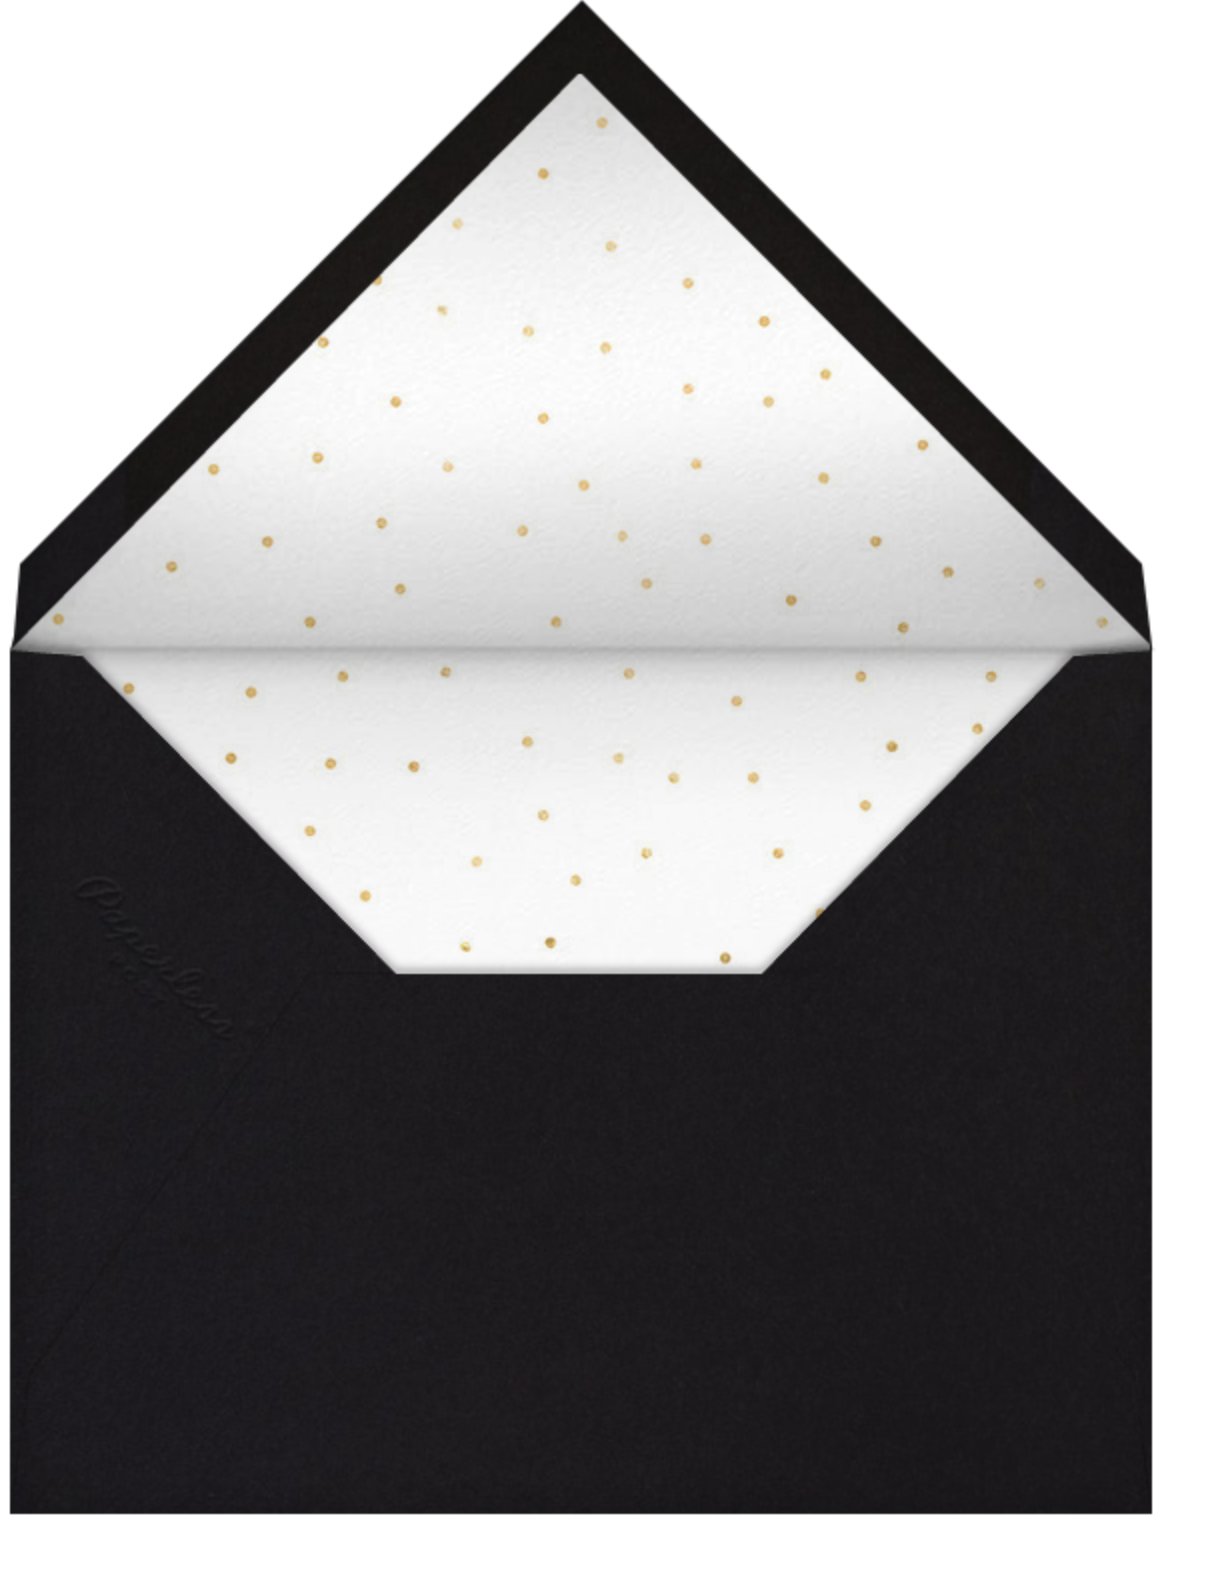 Hocus Pocus - Gold - Sugar Paper - Halloween - envelope back